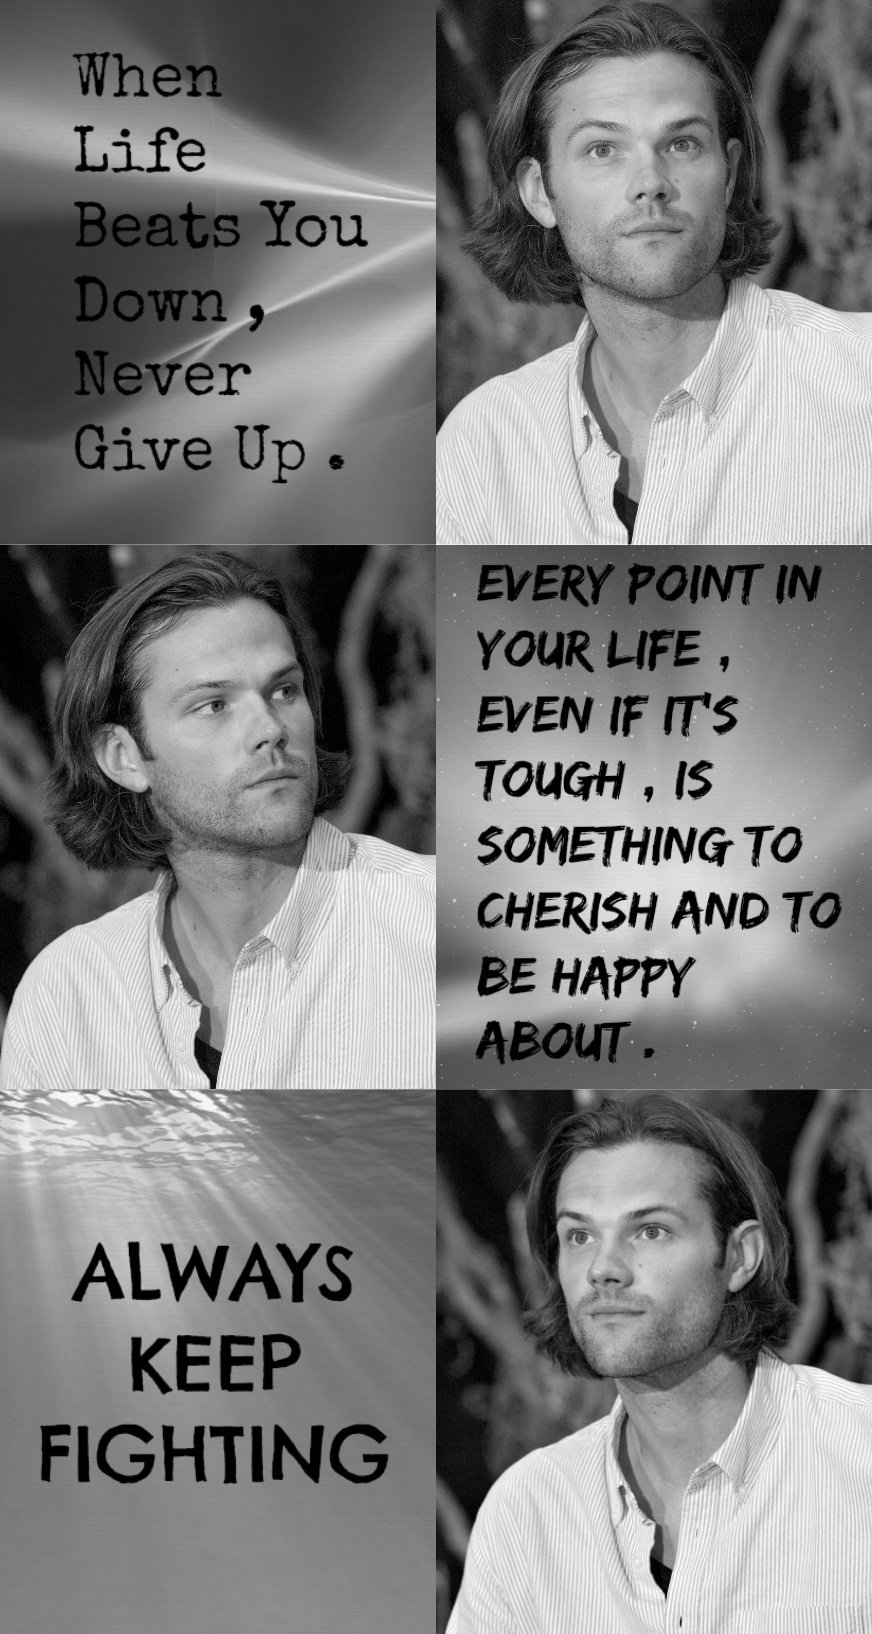 Jared padalecki quotes - Jared Aesthetics On Twitter Jared Padalecki Inspirational Quotes Aesthetic Akf Per Request Https T Co Khxdkxwomy